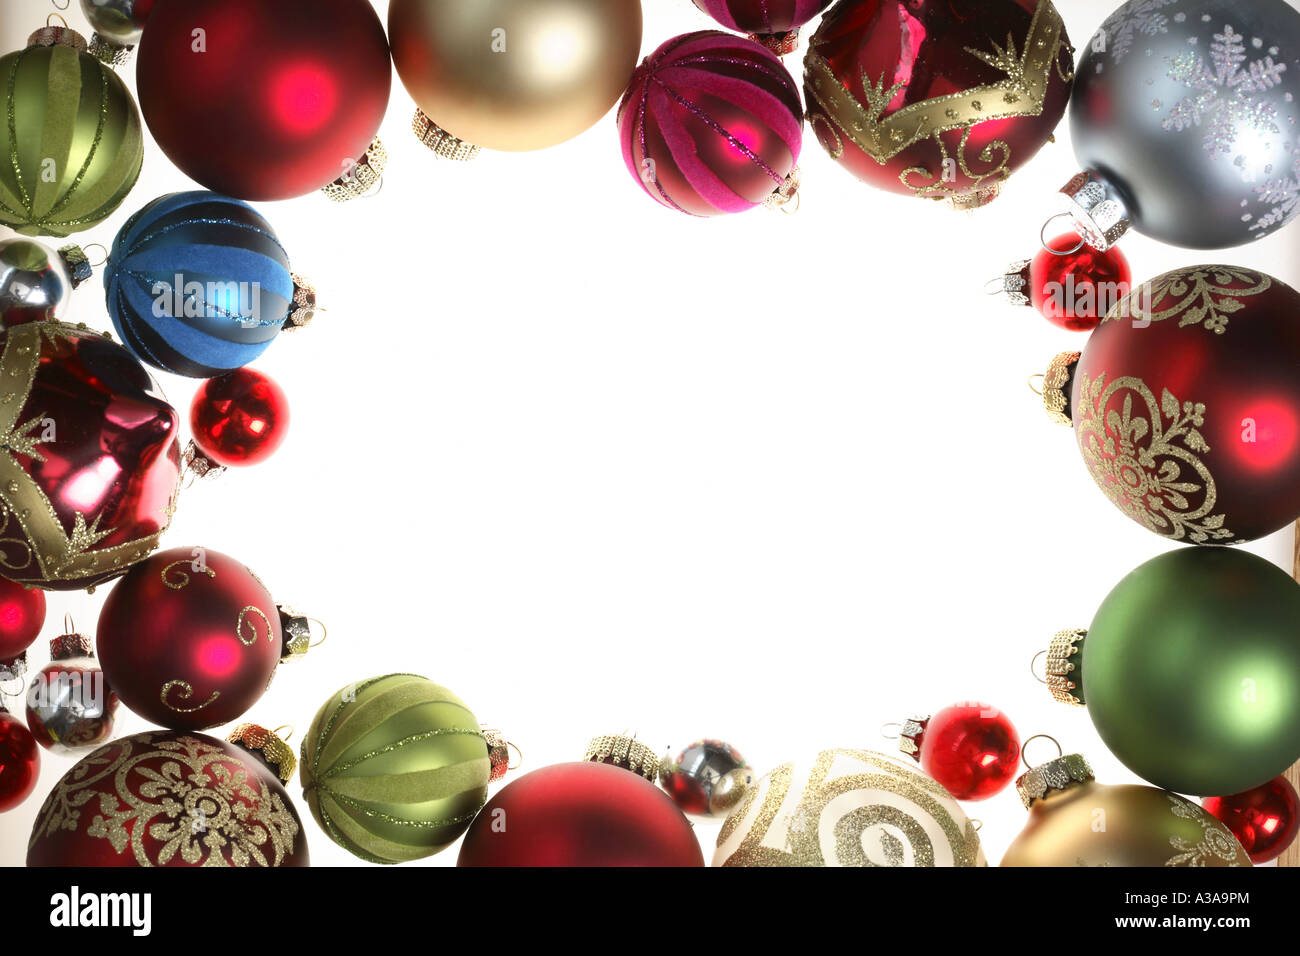 Christmas Ornament Border Stock Photo Royalty Free Image